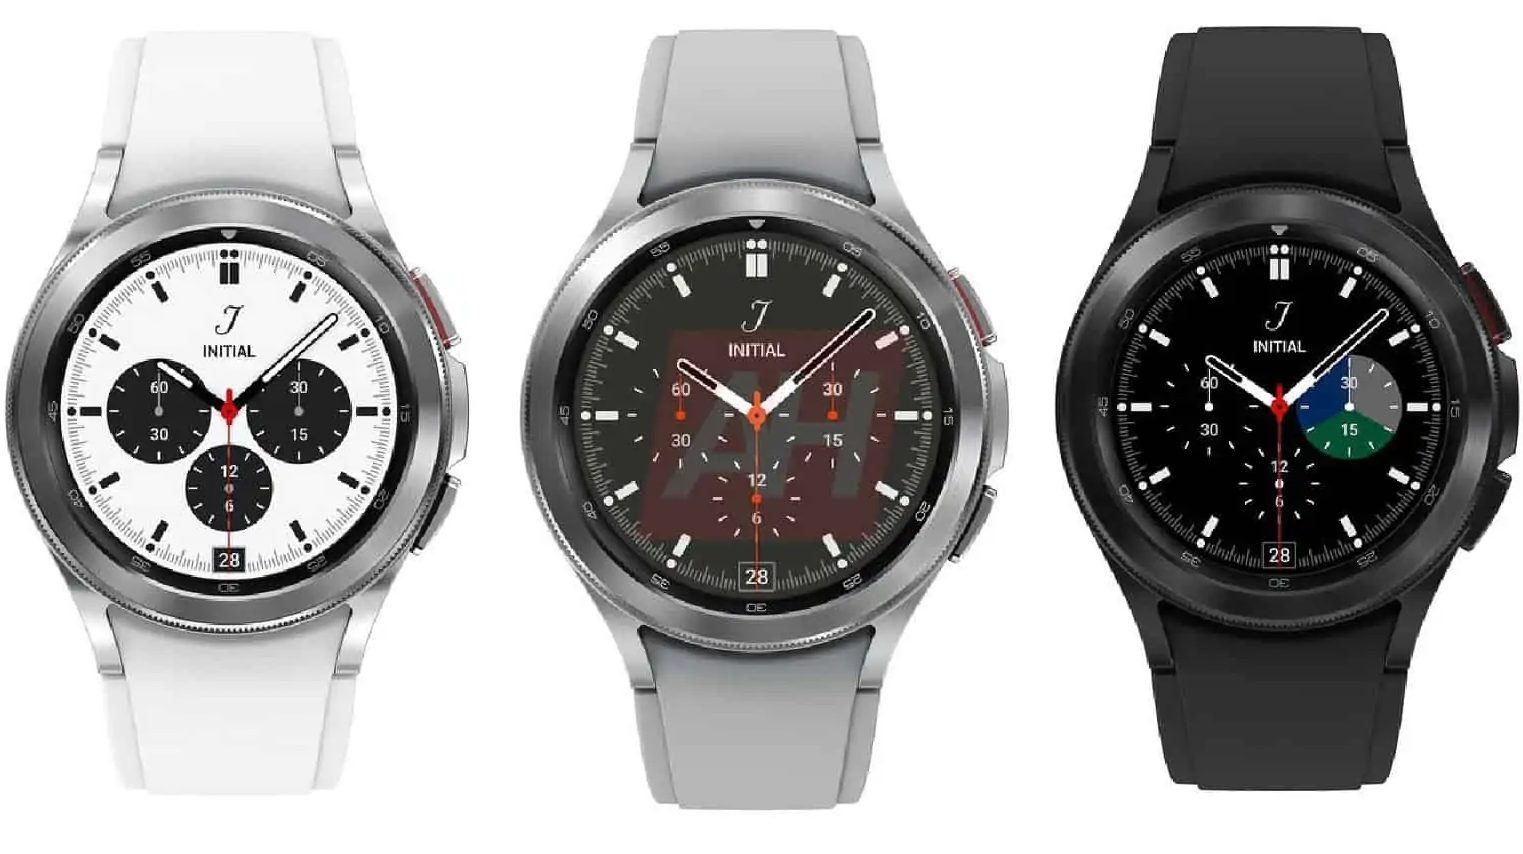 Leaked Samsung Galaxy Watch 4 Classic renders showing it in white, grey and black shades